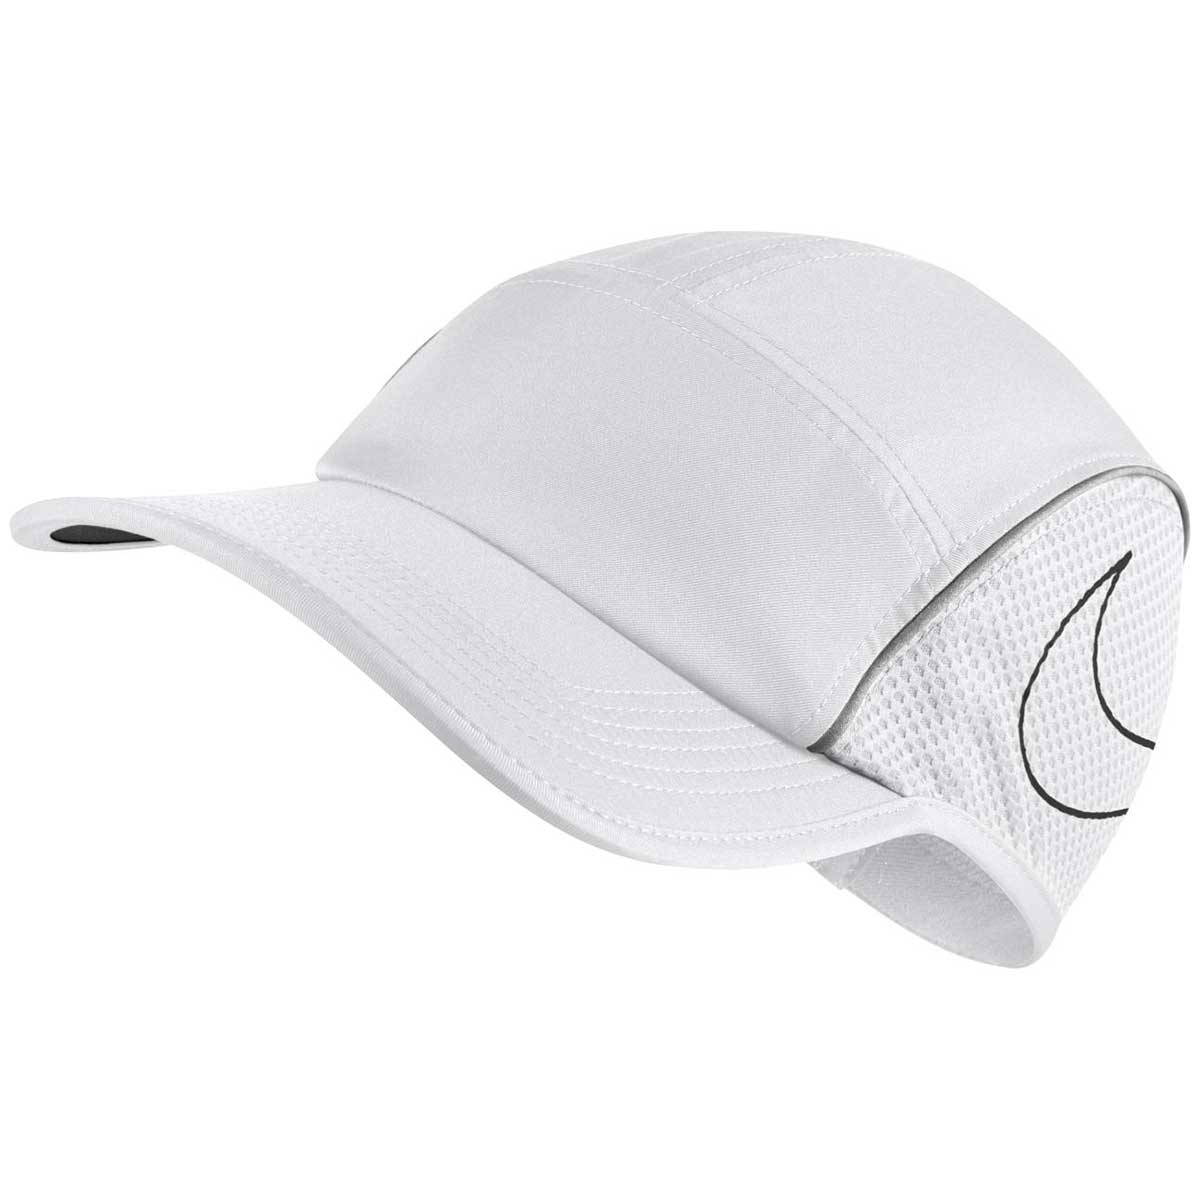 742c4e7ba5903 Buy Nike AeroBill Running Cap Online India|Nike Tennis Accessories